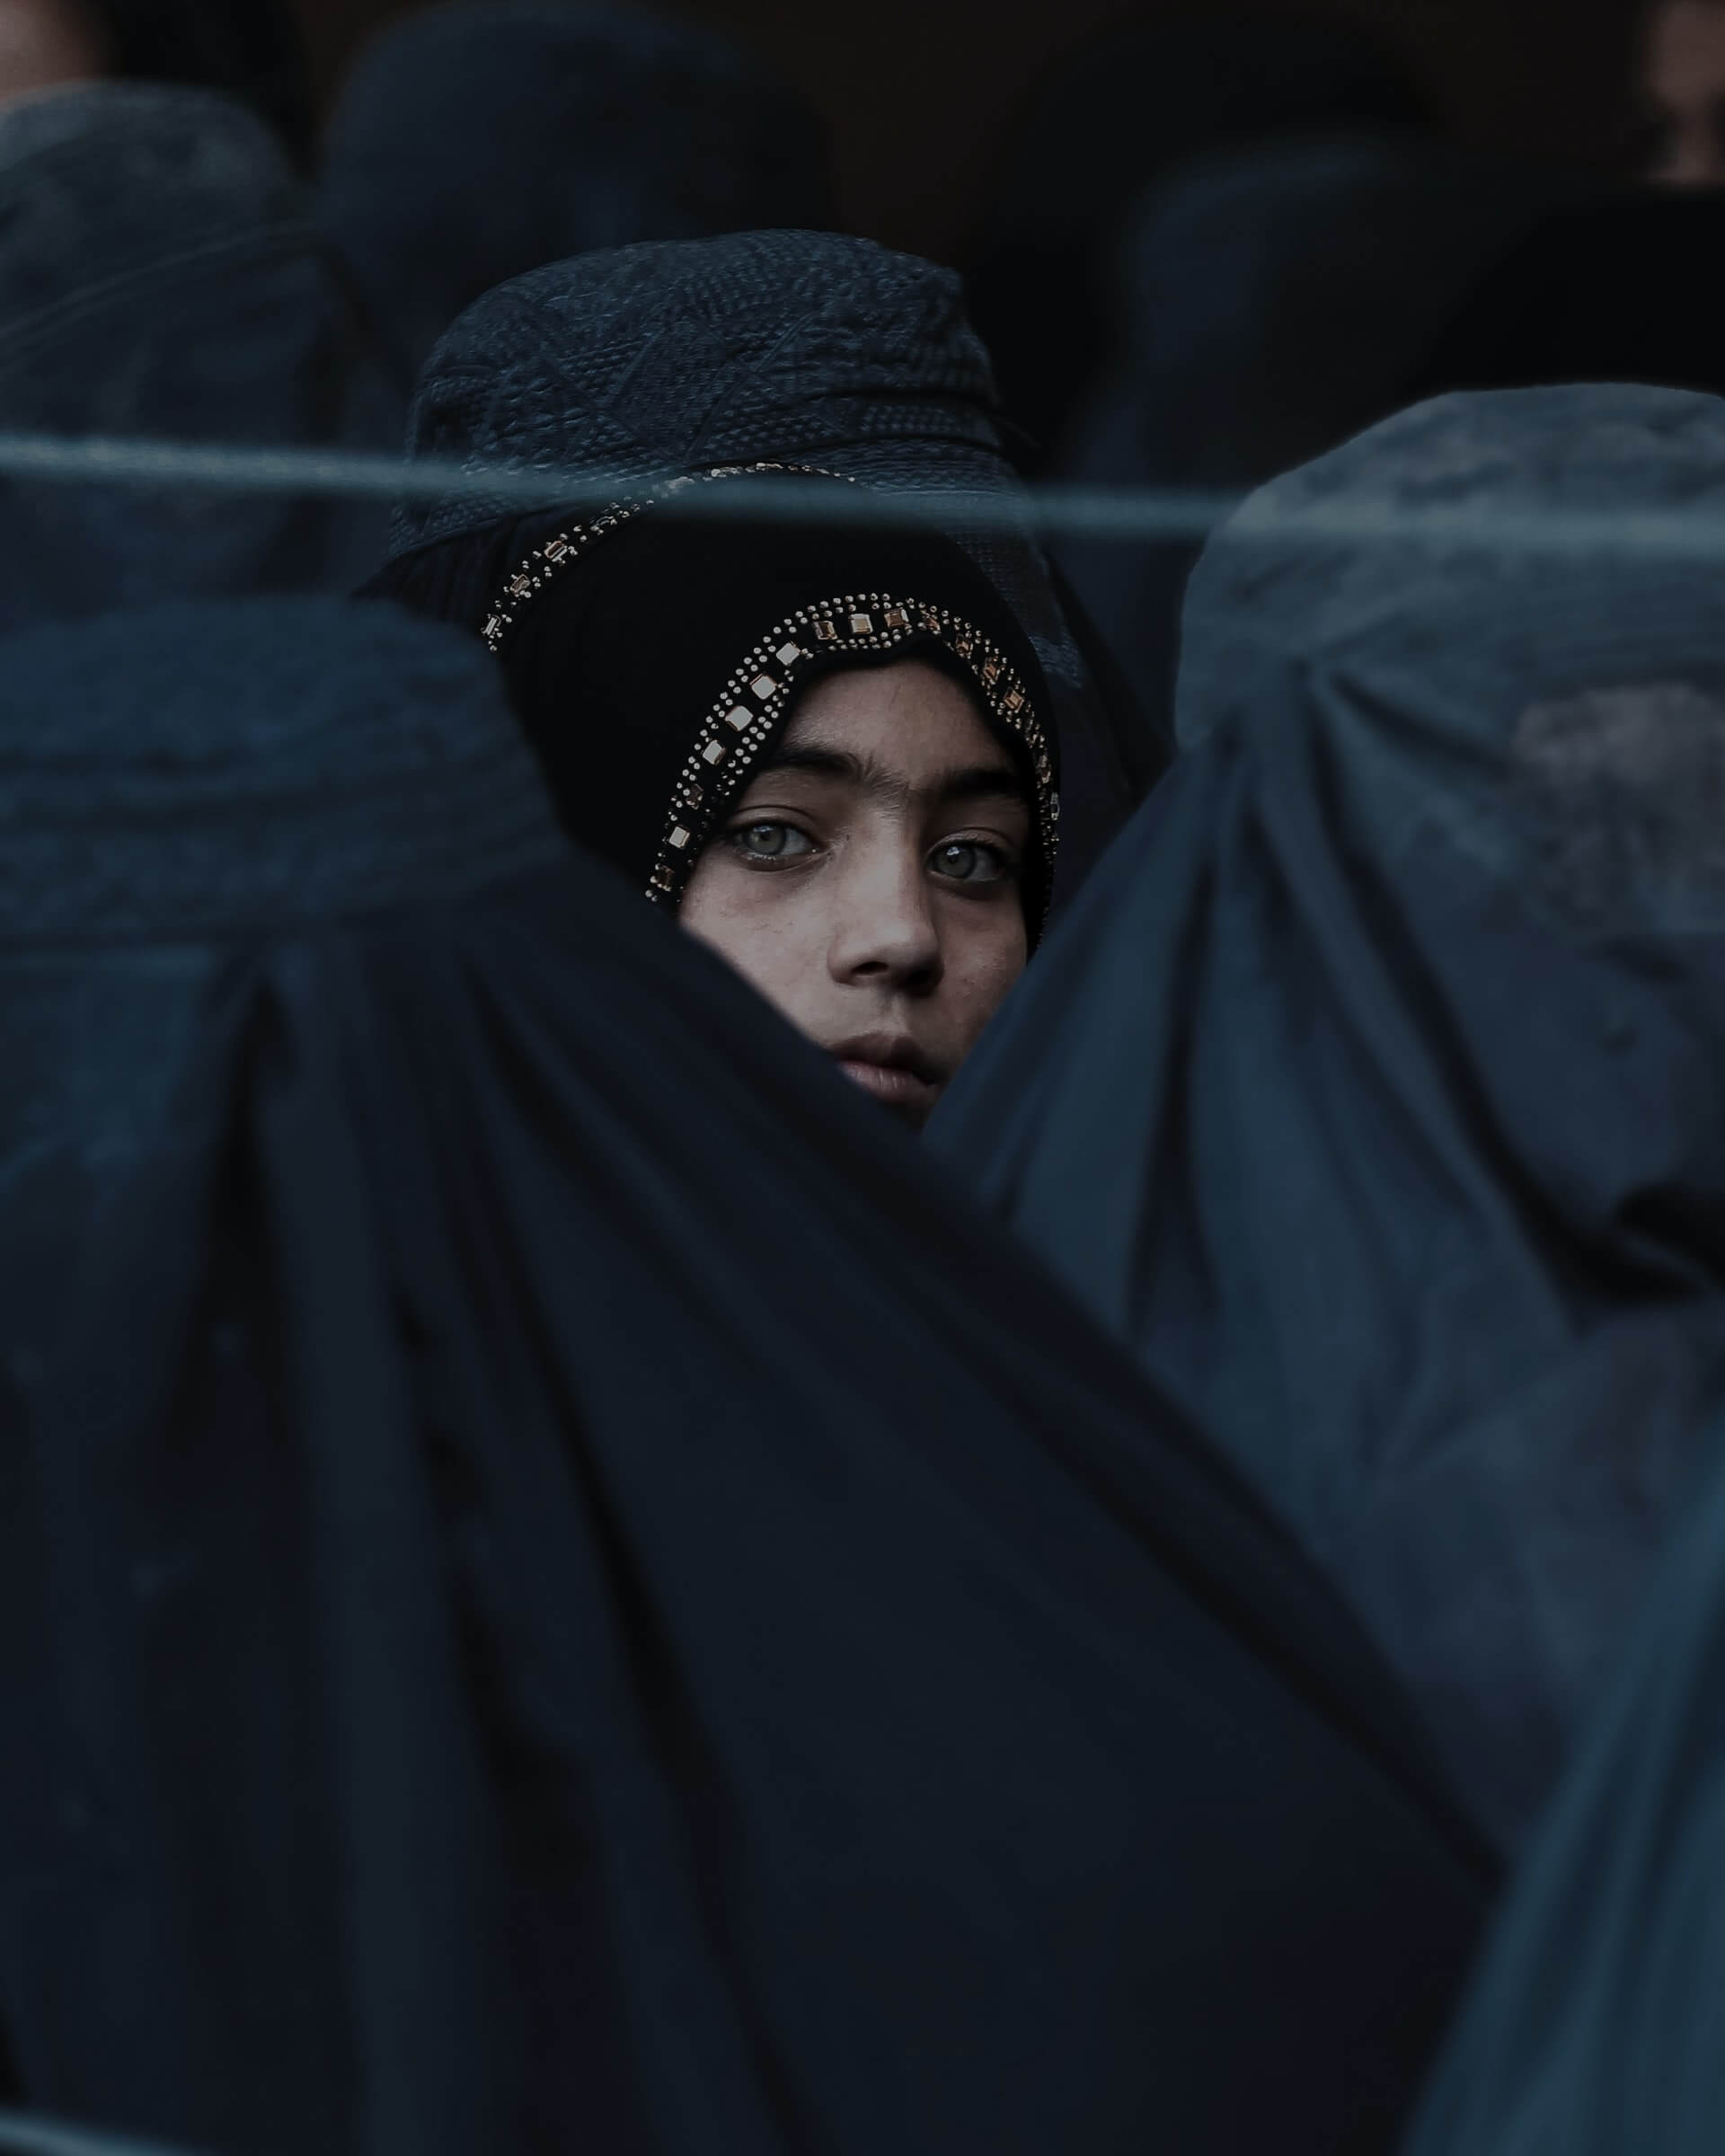 A young Afghan girl with blue eyes in a crowd of locals wearing burqas.